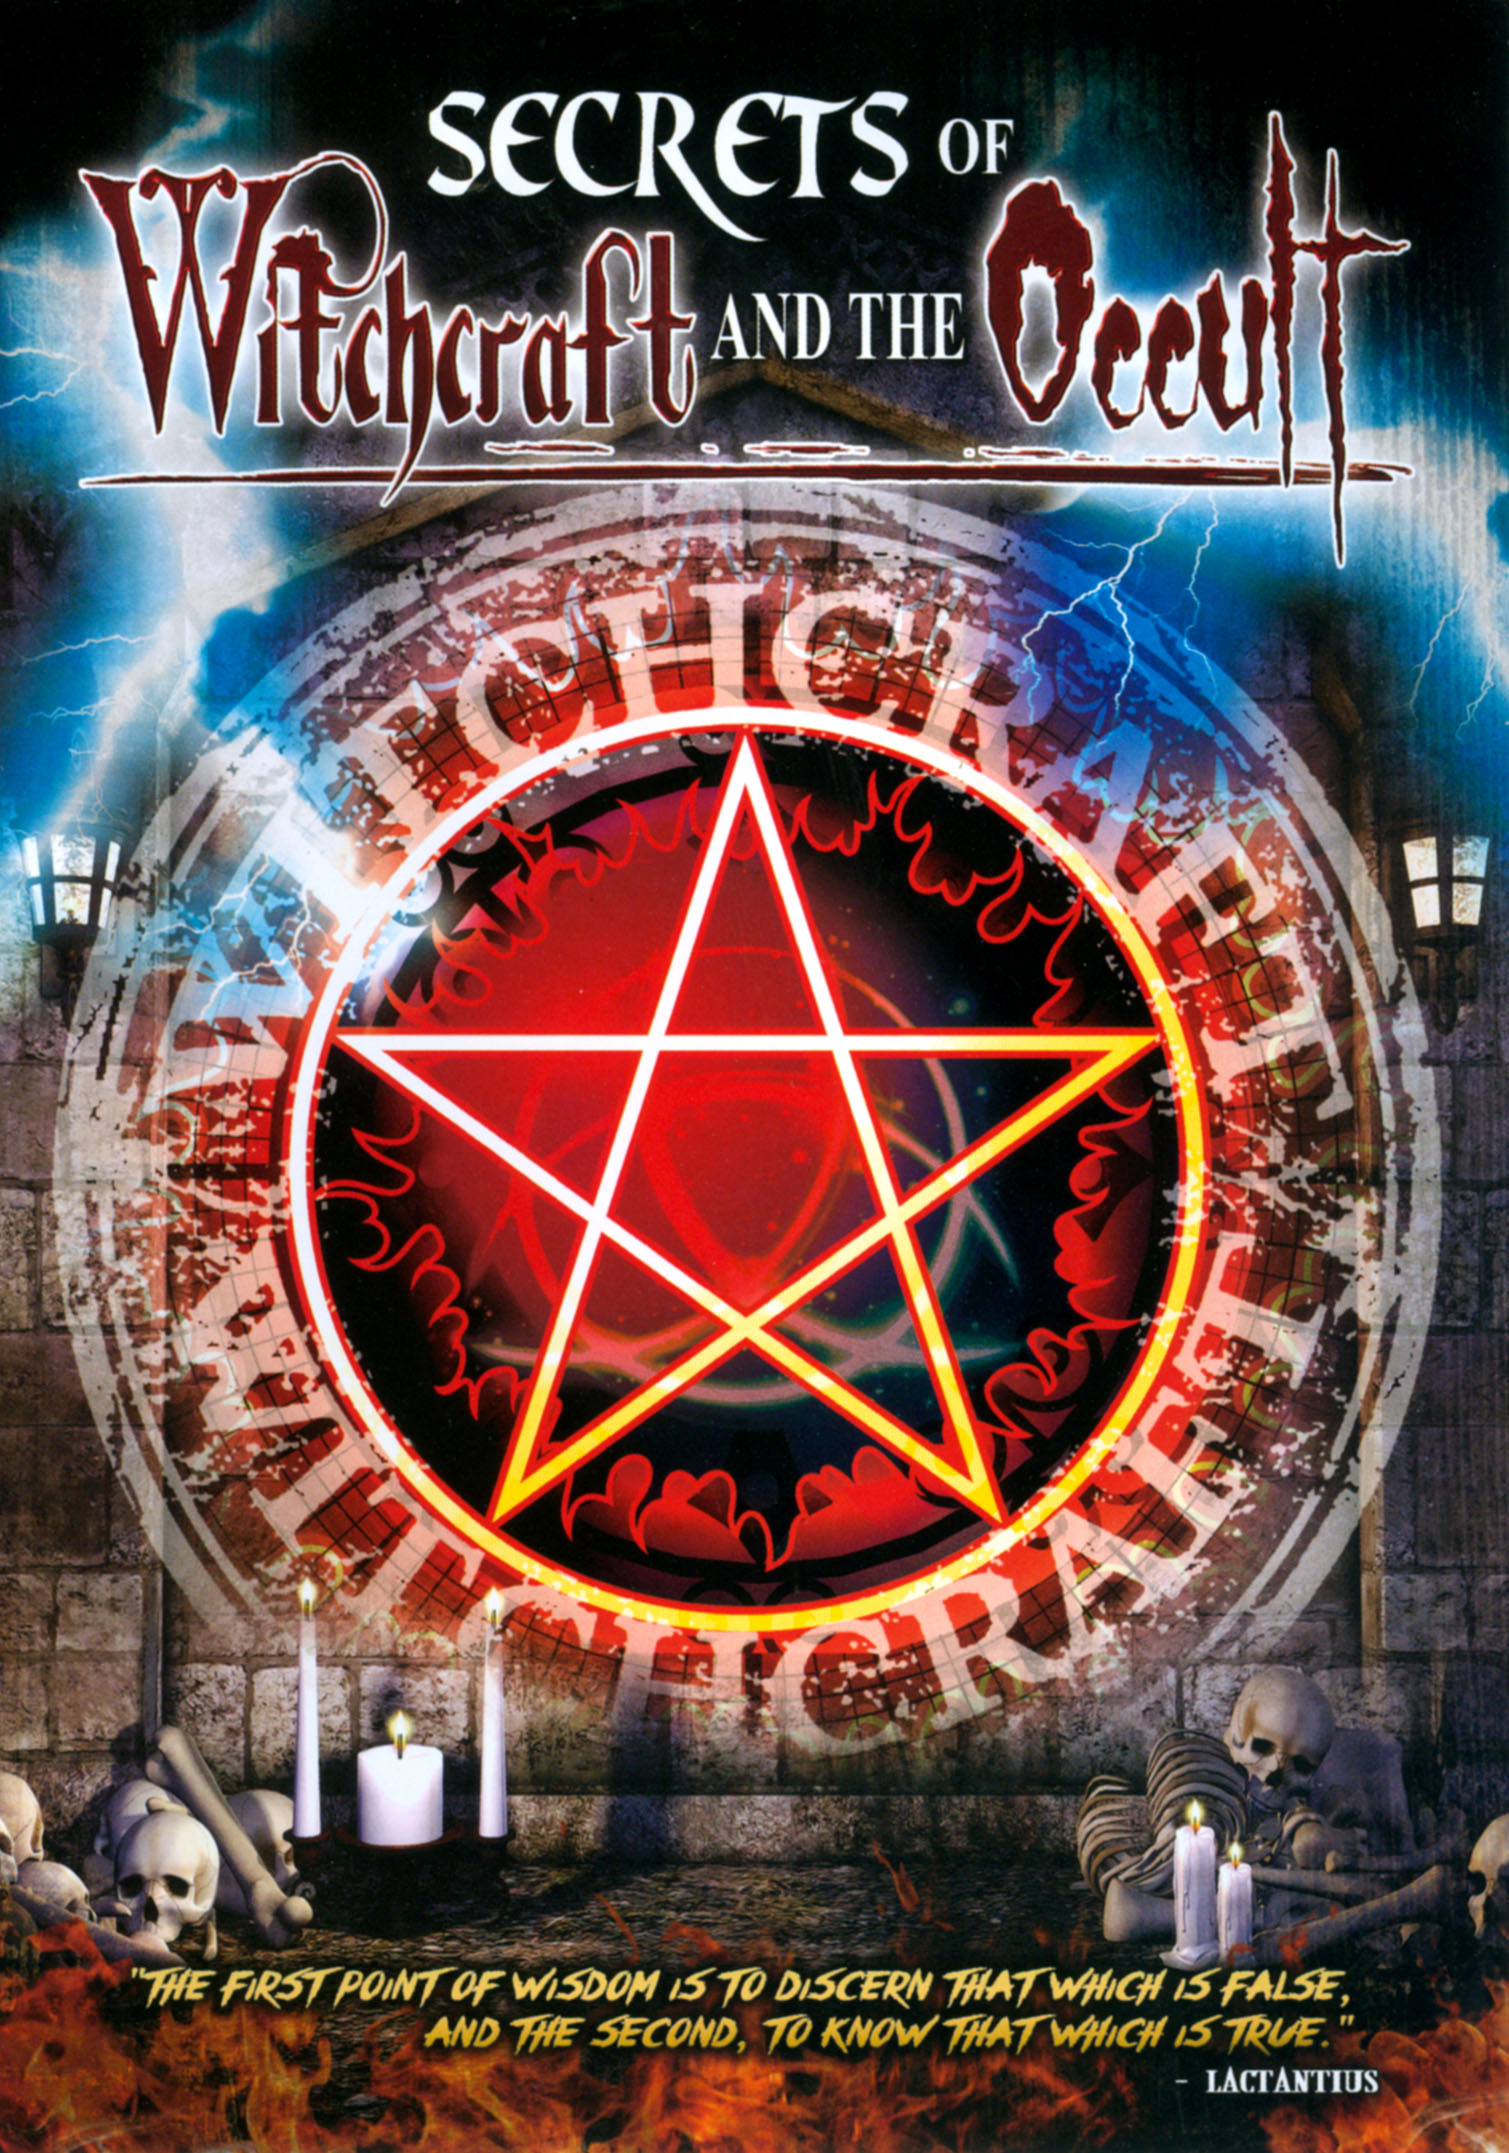 Secrets of Witchcraft and the Occult